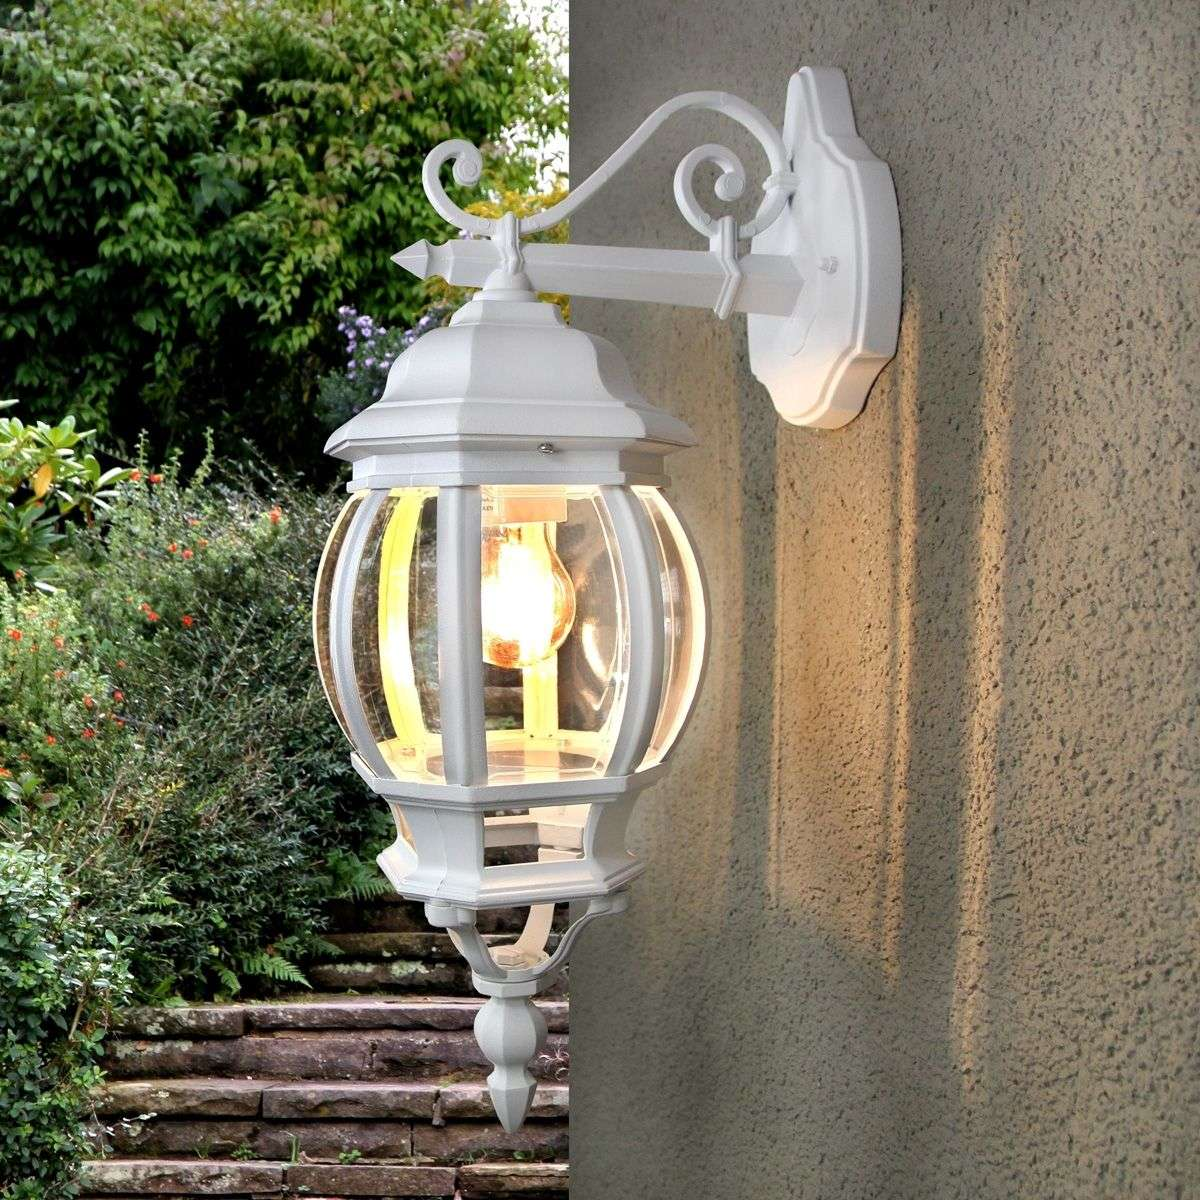 Theodor Outside Wall Light White | Lights.co.uk